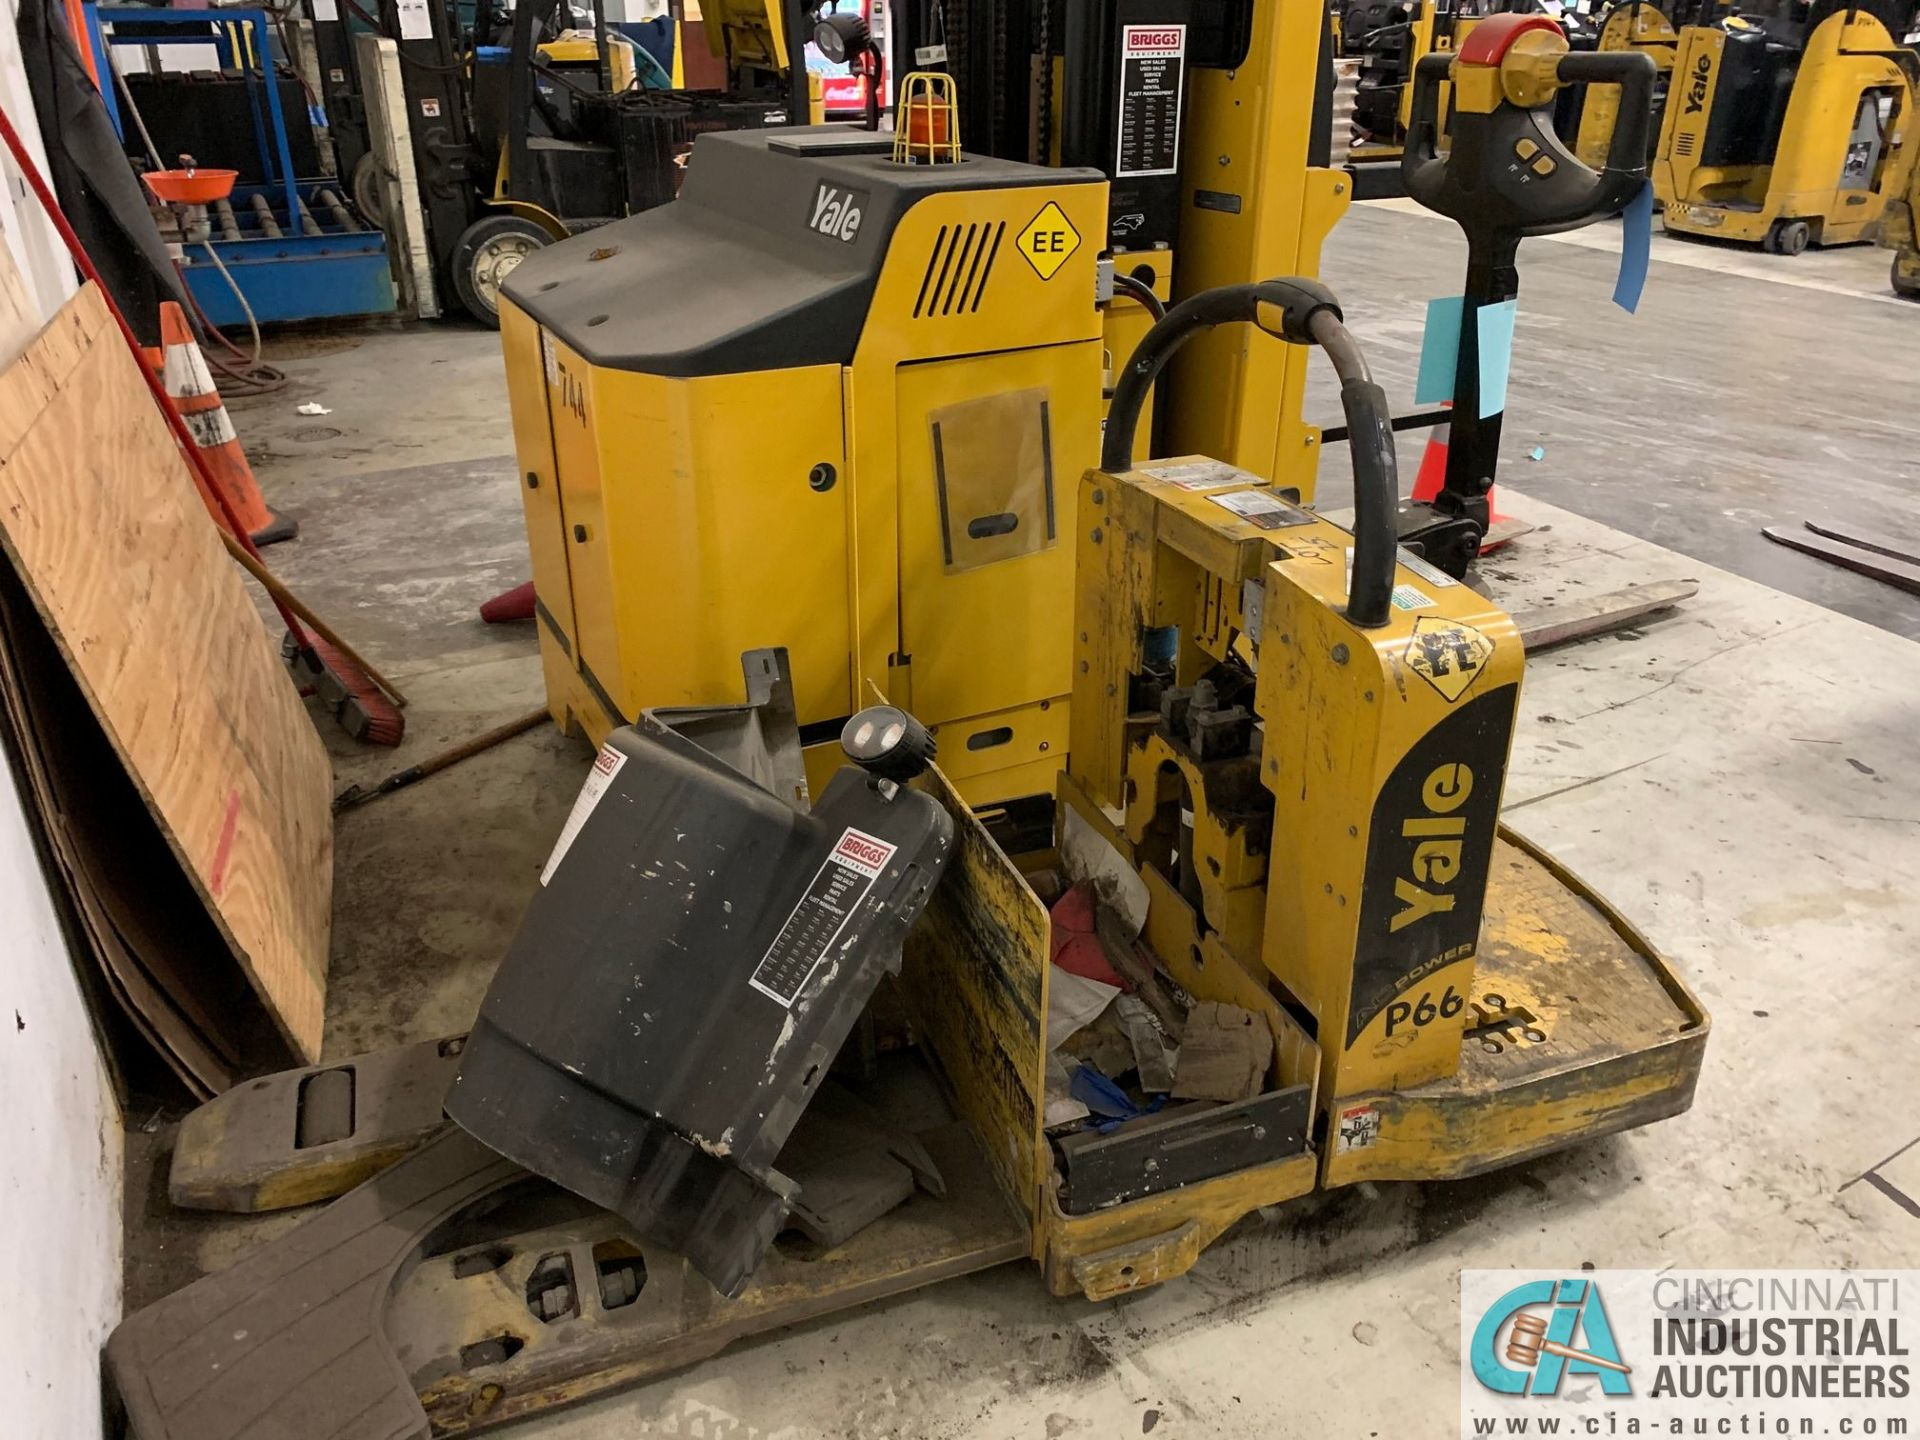 6,000 LB. YALE MODEL MPE060LVGN24T2742 ELECTRIC PALLET TRUCK; S/N A292N01562J (OUT OF SERVICE) (5400 - Image 2 of 3